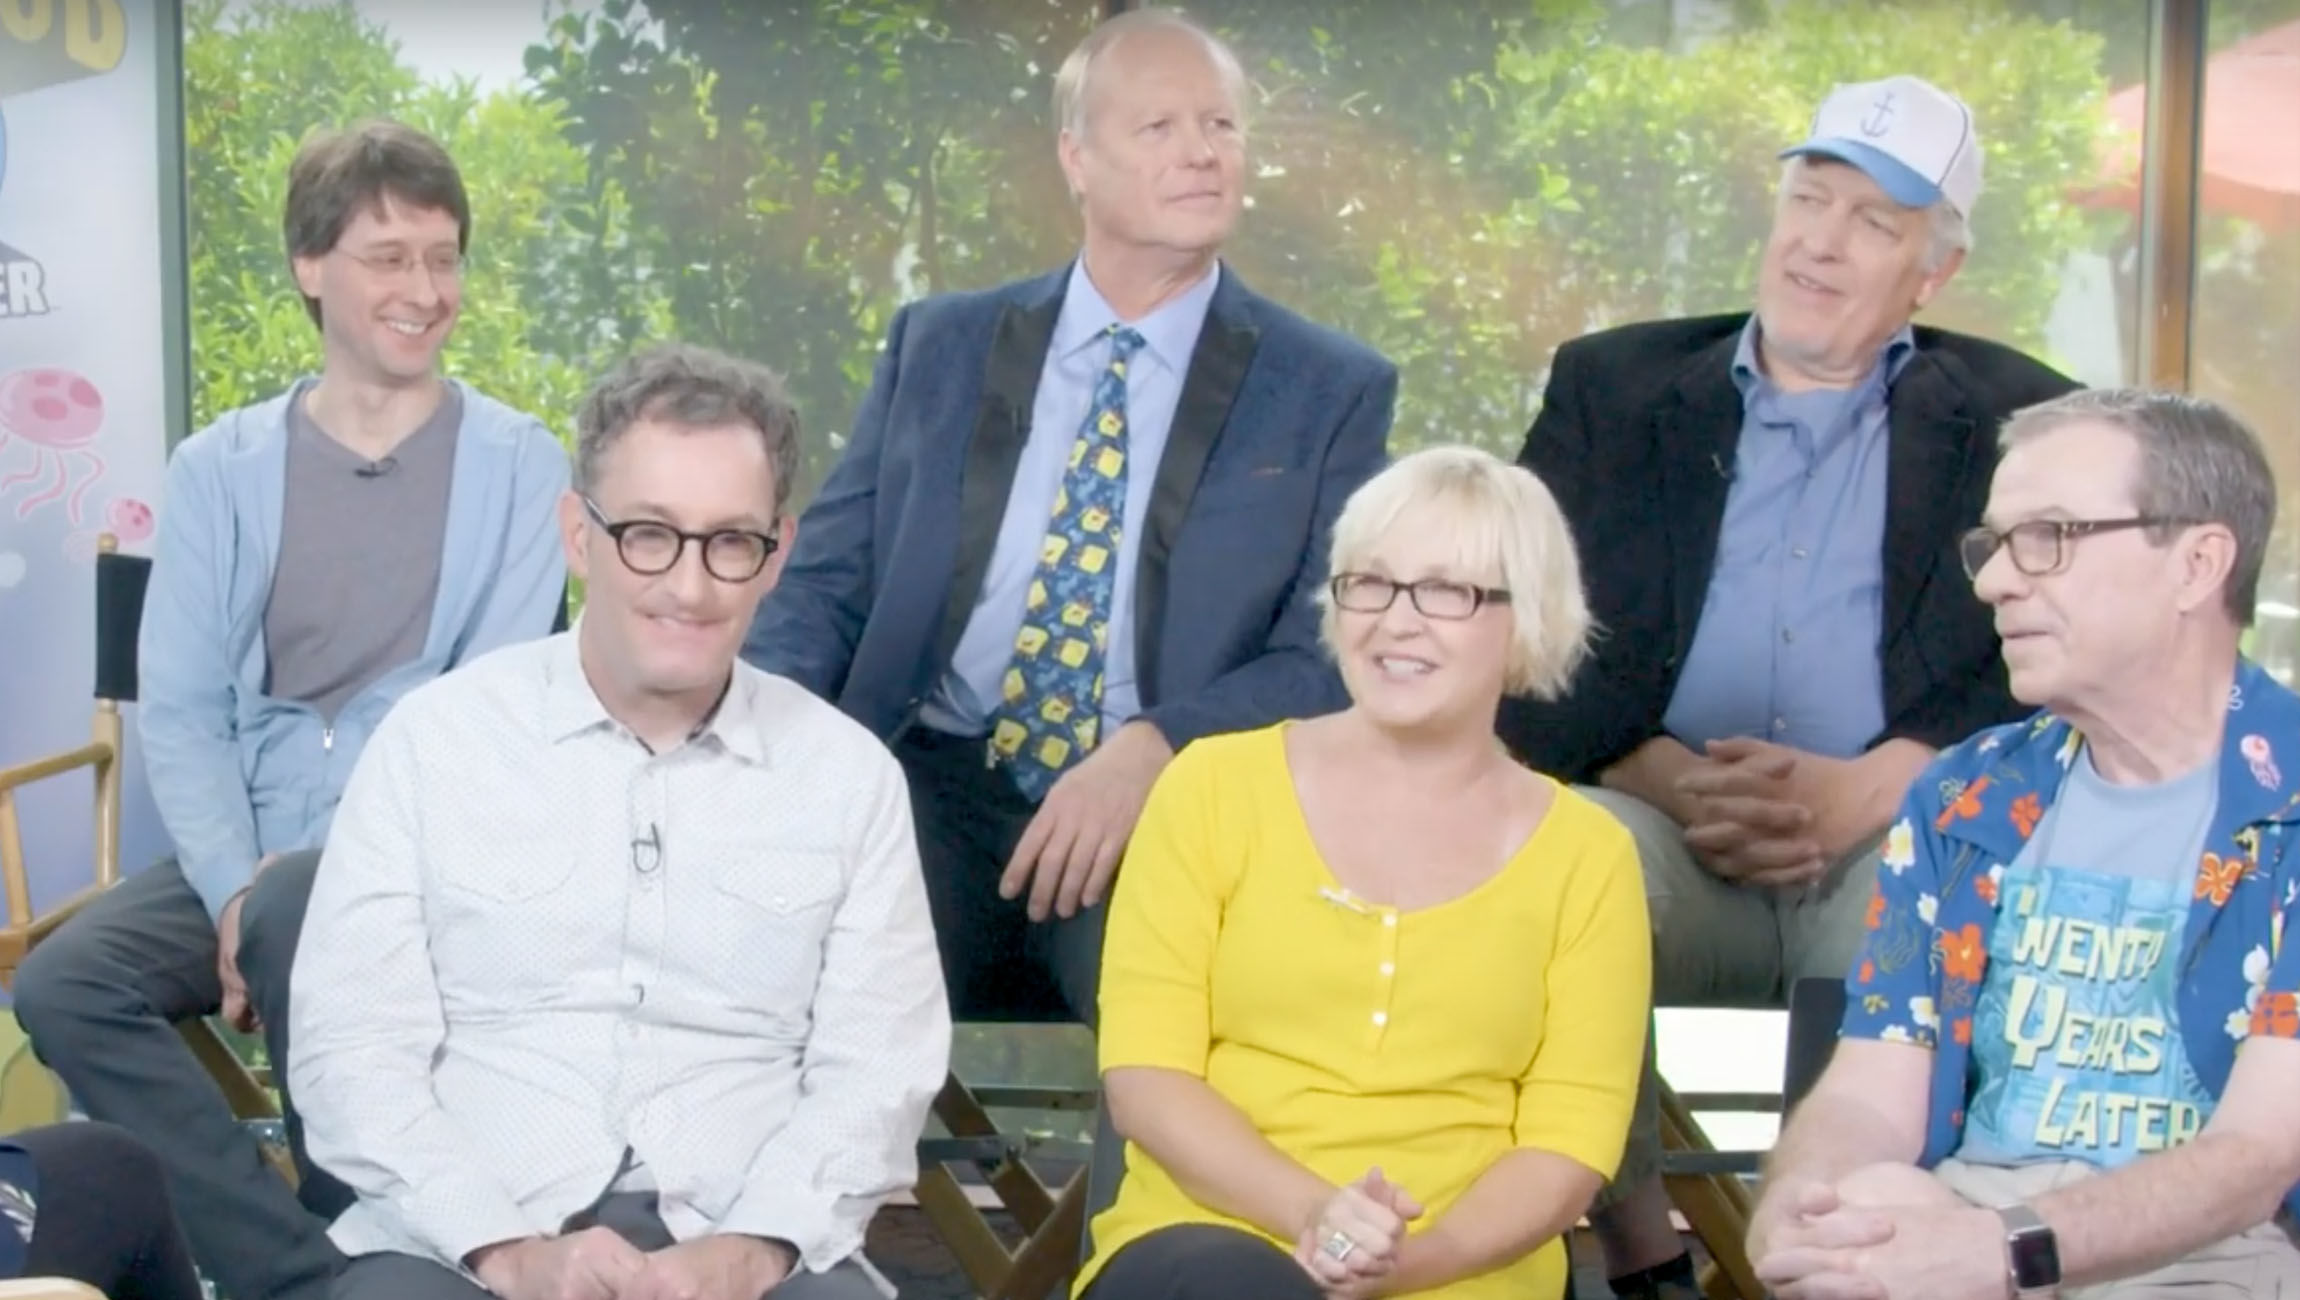 SpongeBob SquarePants: 20 Years, 20 Questions with the cast